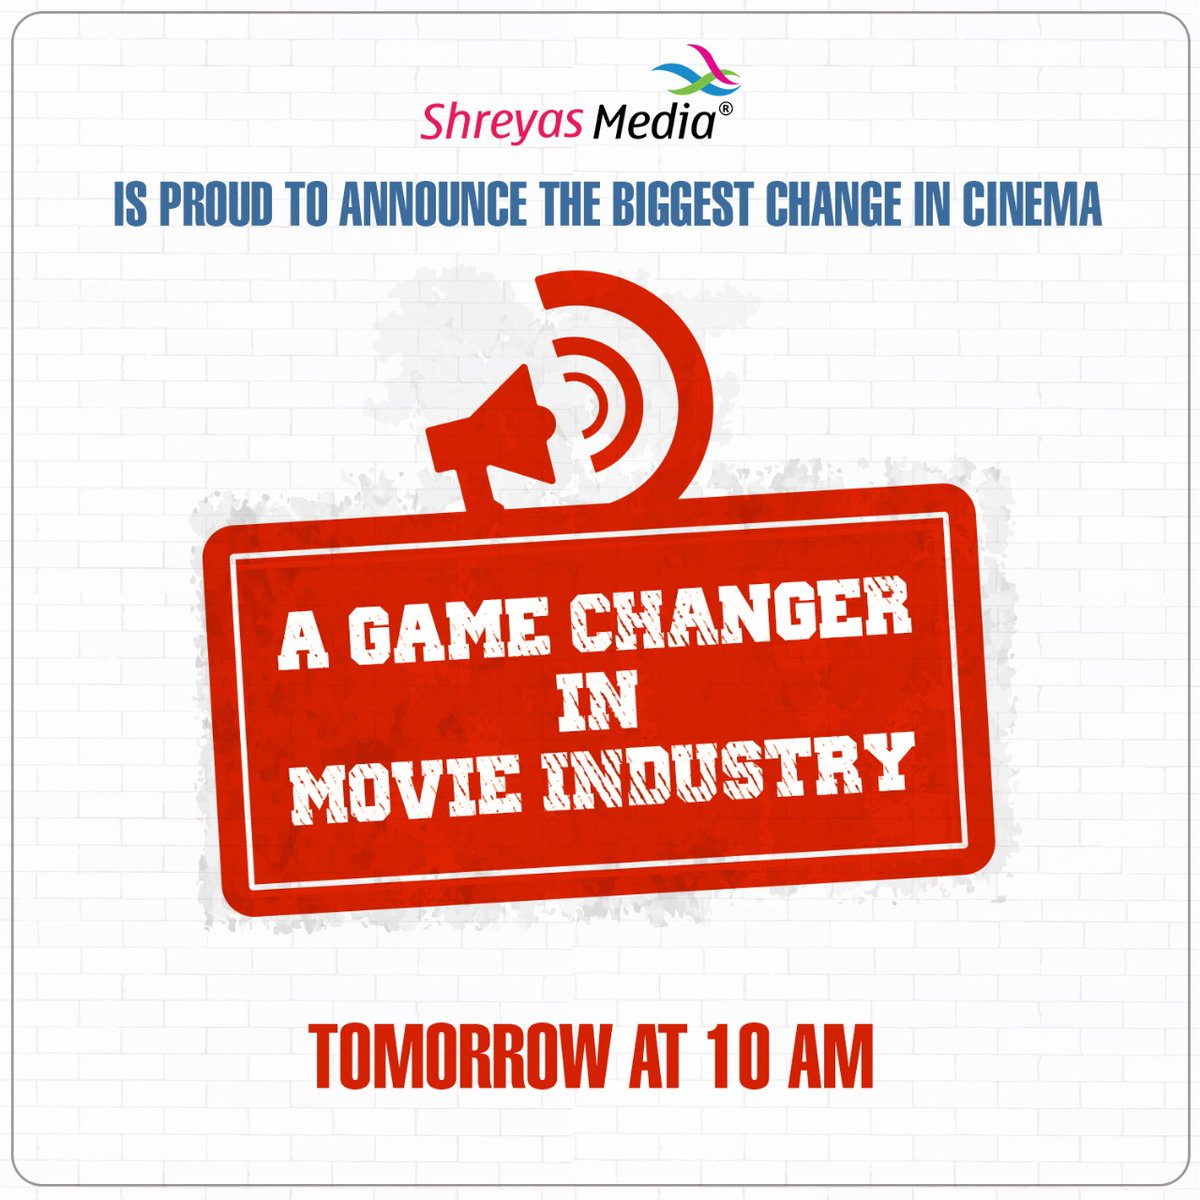 Get ready for a game changing announcement from @shreyasgroup tomorrow at 10AM. BRACE YOURSELF!!  #MovieMania #GameChanger #ShreyasMakesAMovepic.twitter.com/1D0HlnmvNn